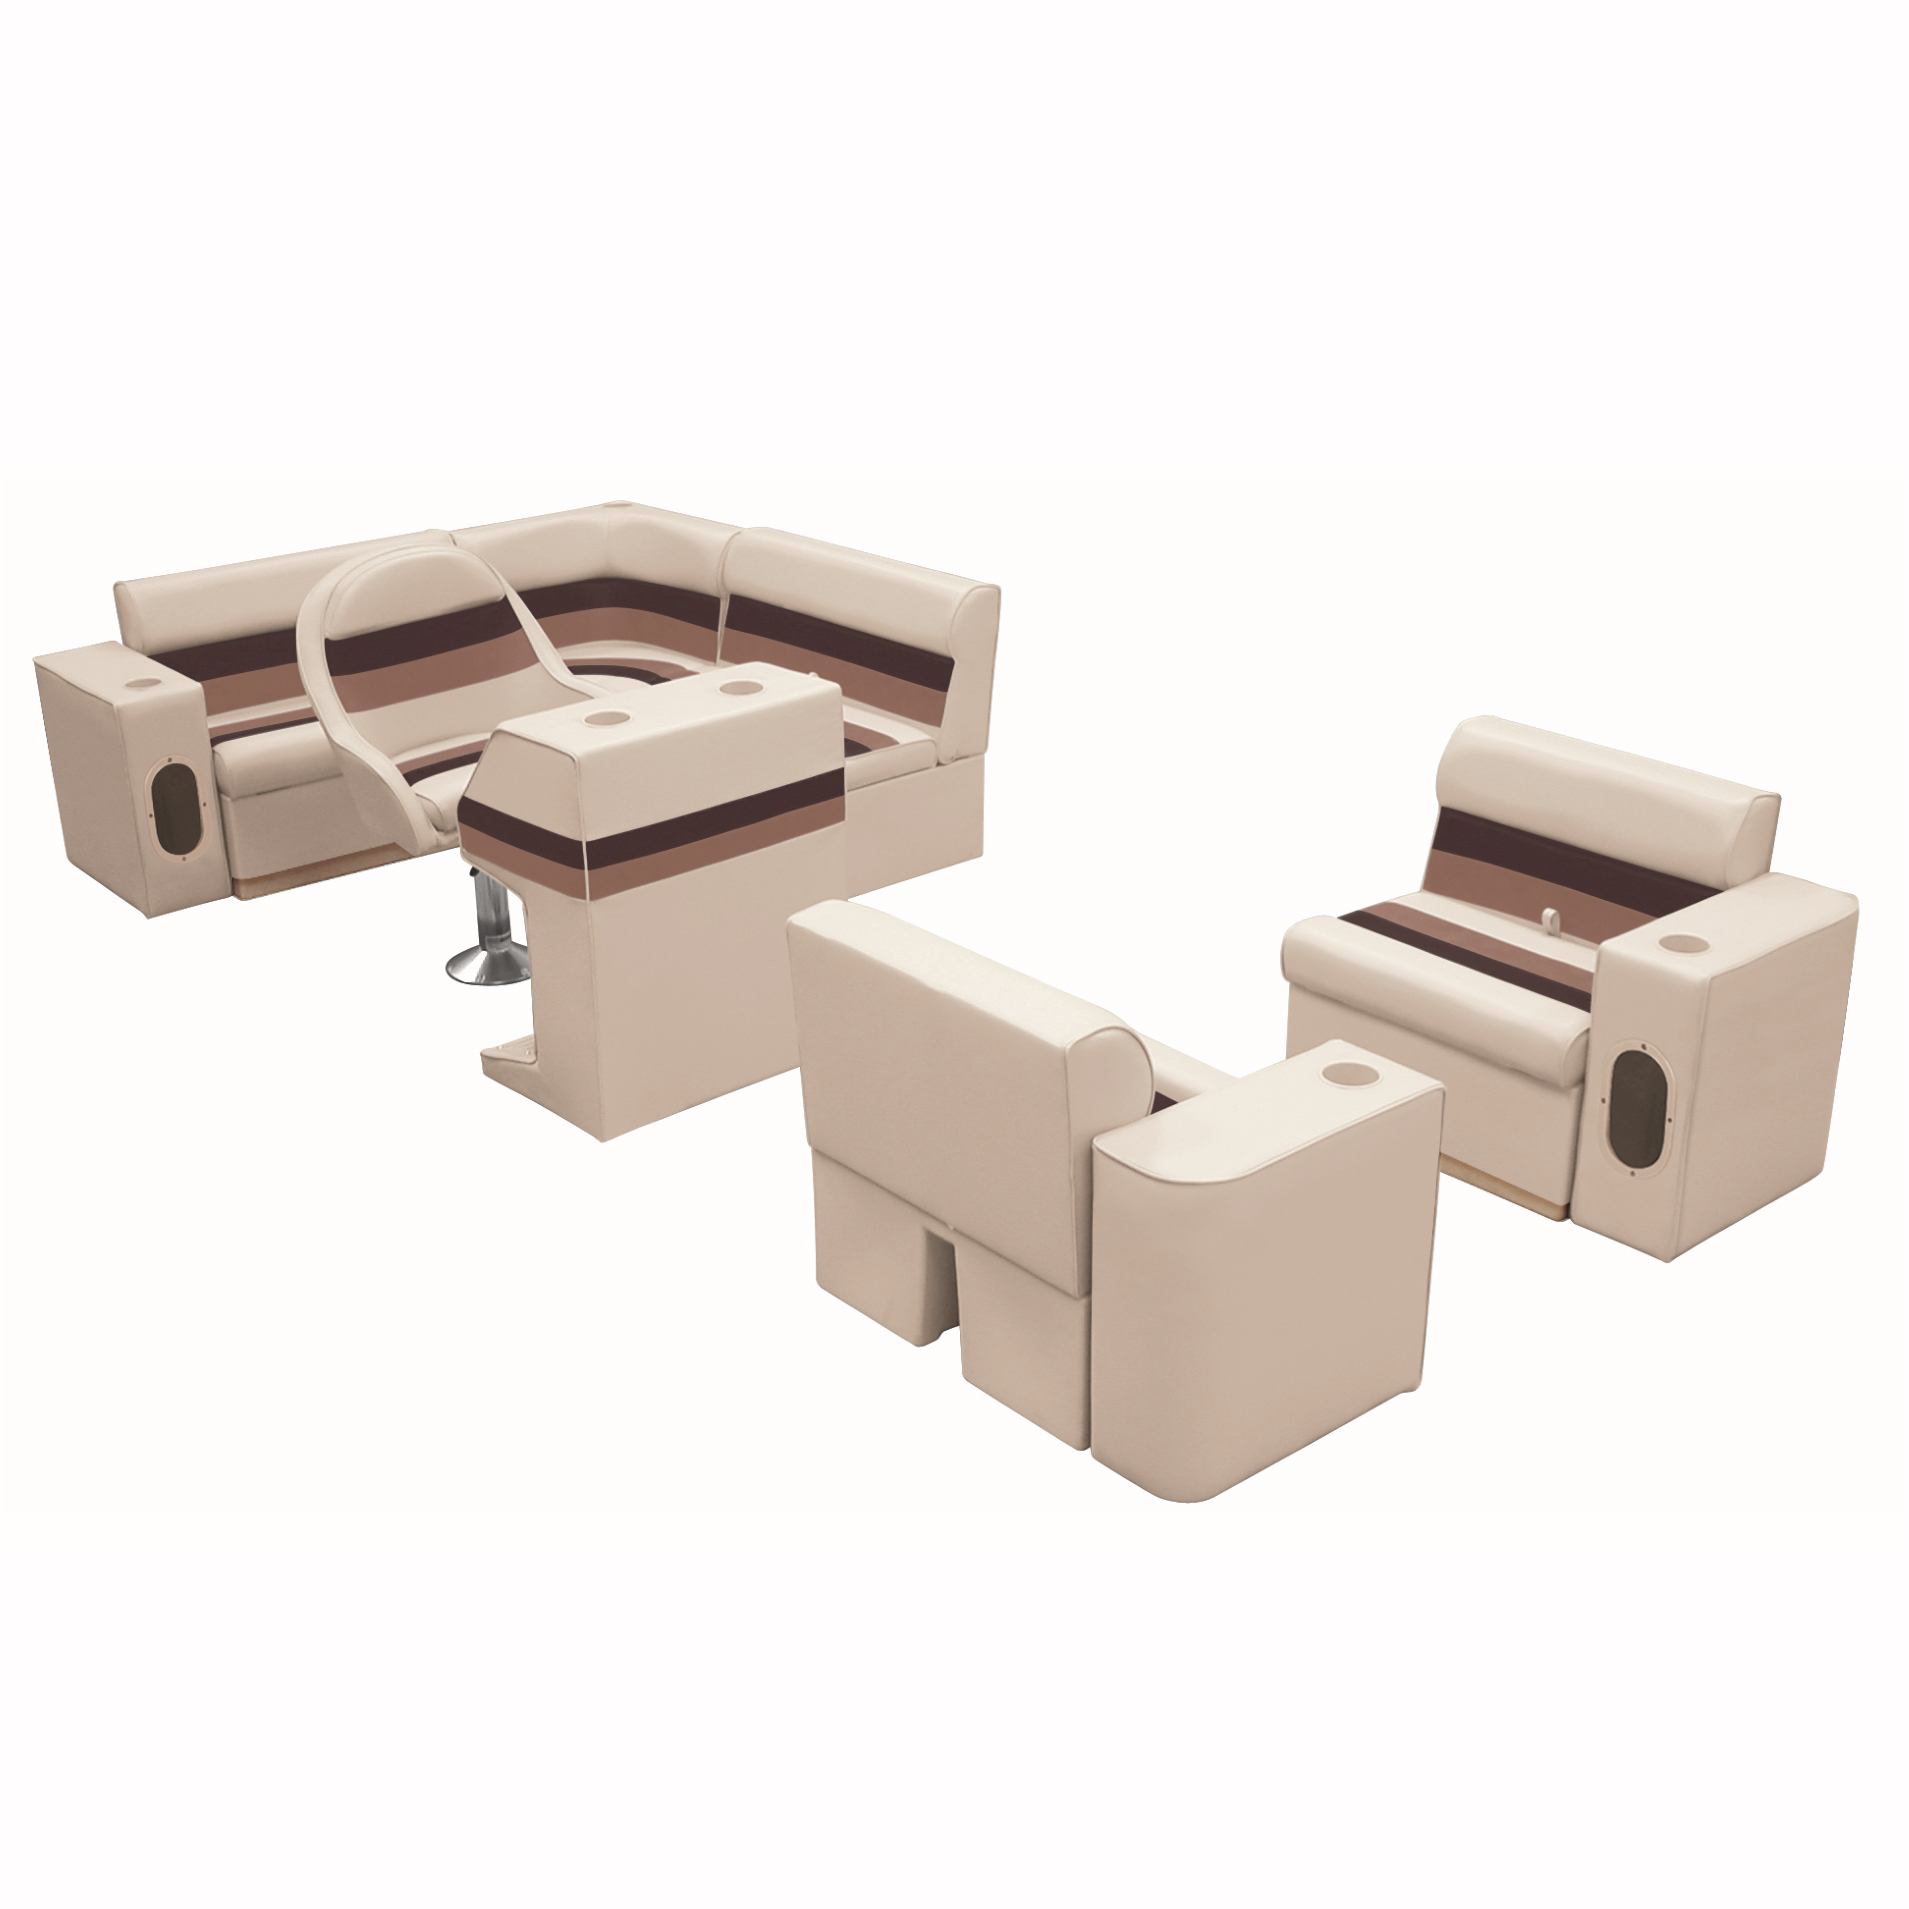 Deluxe Pontoon Furniture w/Toe Kick Base, Group 6 Package, Sand/Chestnut/Gold